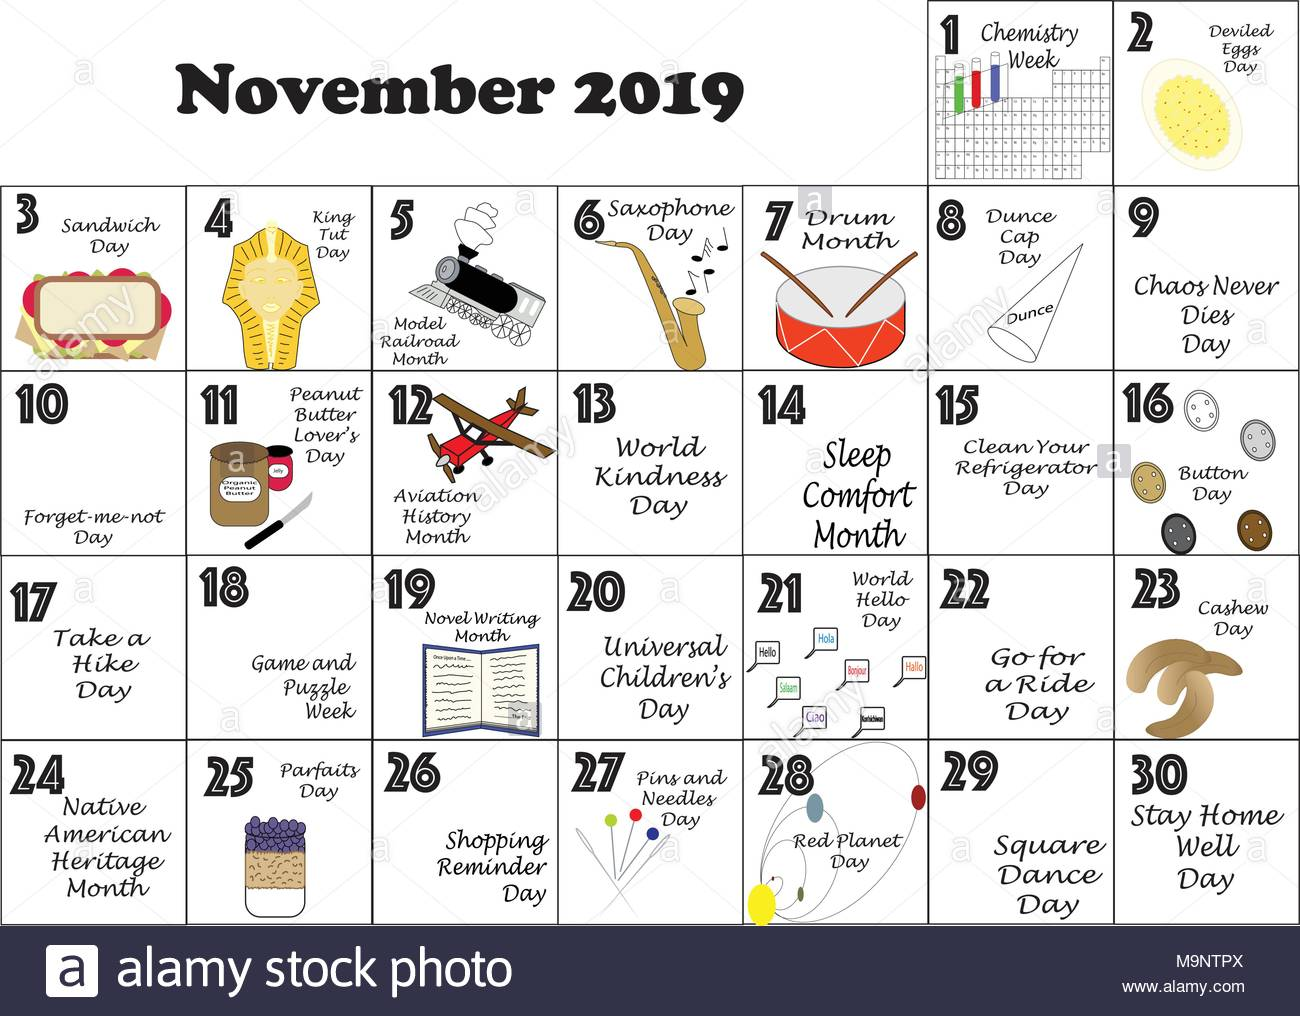 Calendar Celebrations 2019 November 2019 monthly calendar illustrated and annotated with